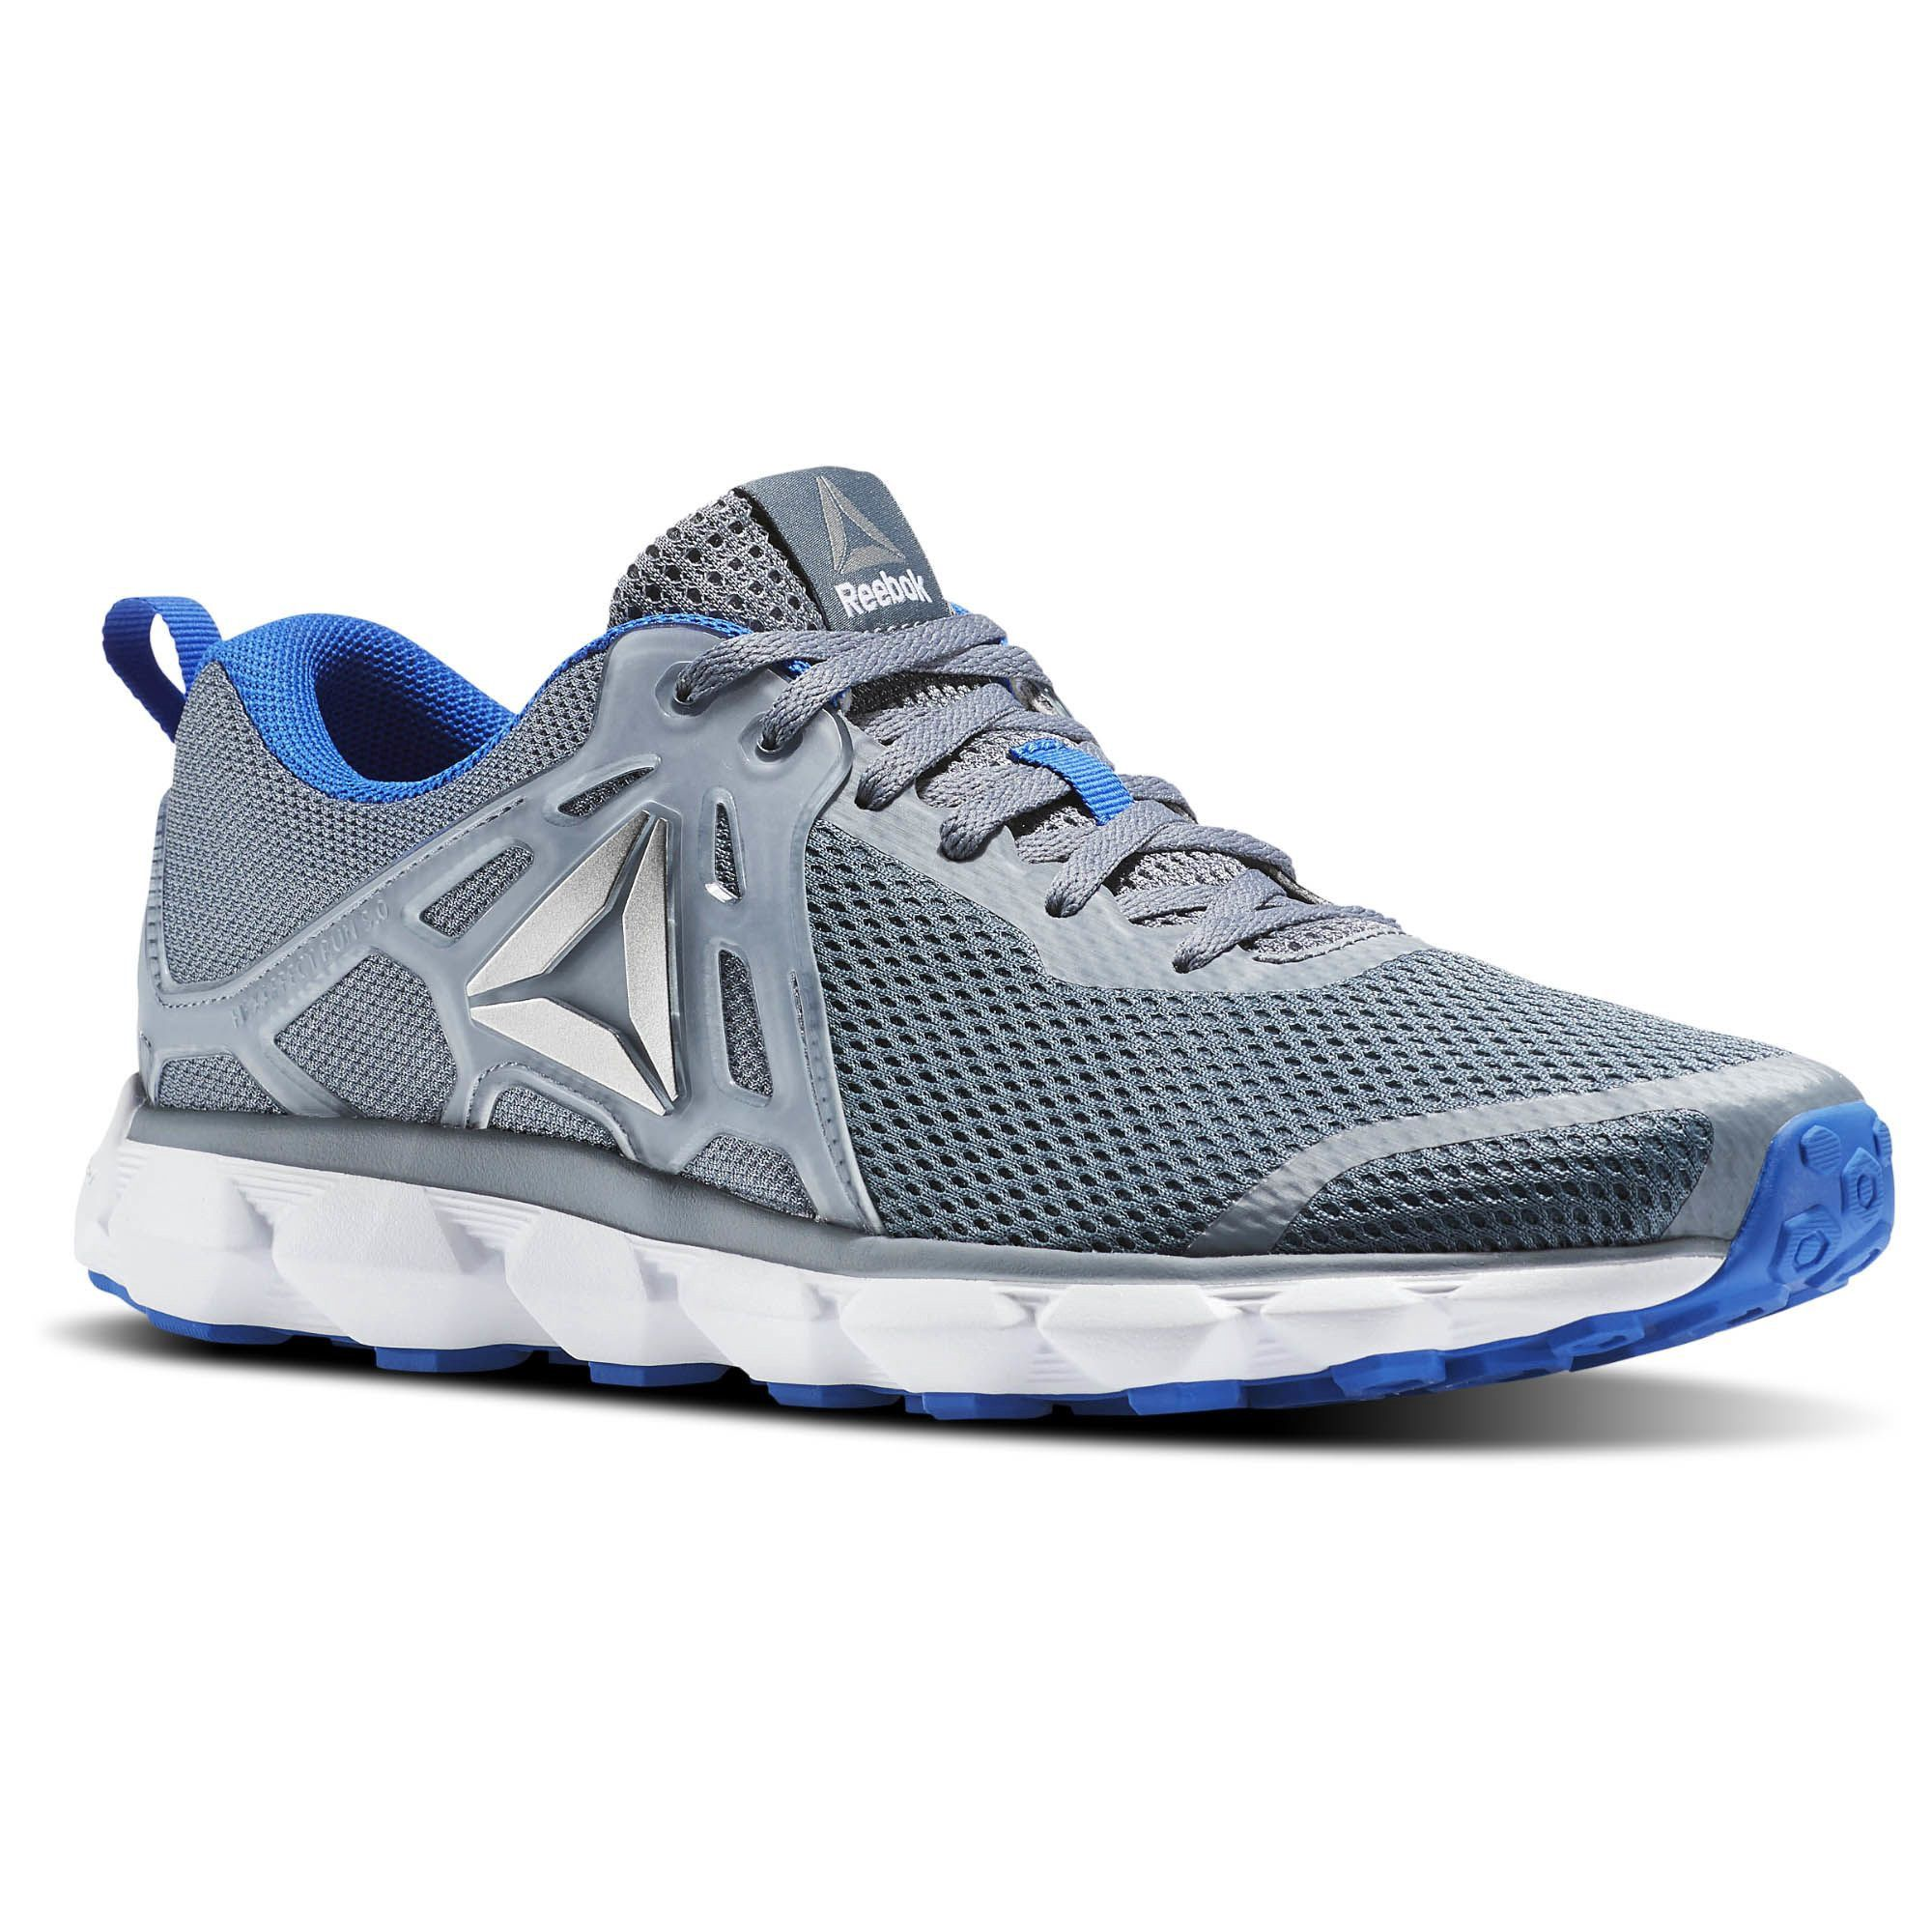 new official select for clearance Reebok Hexaffect Run 5.0 Mtm - Asteroid Dust / Vital Blue ...